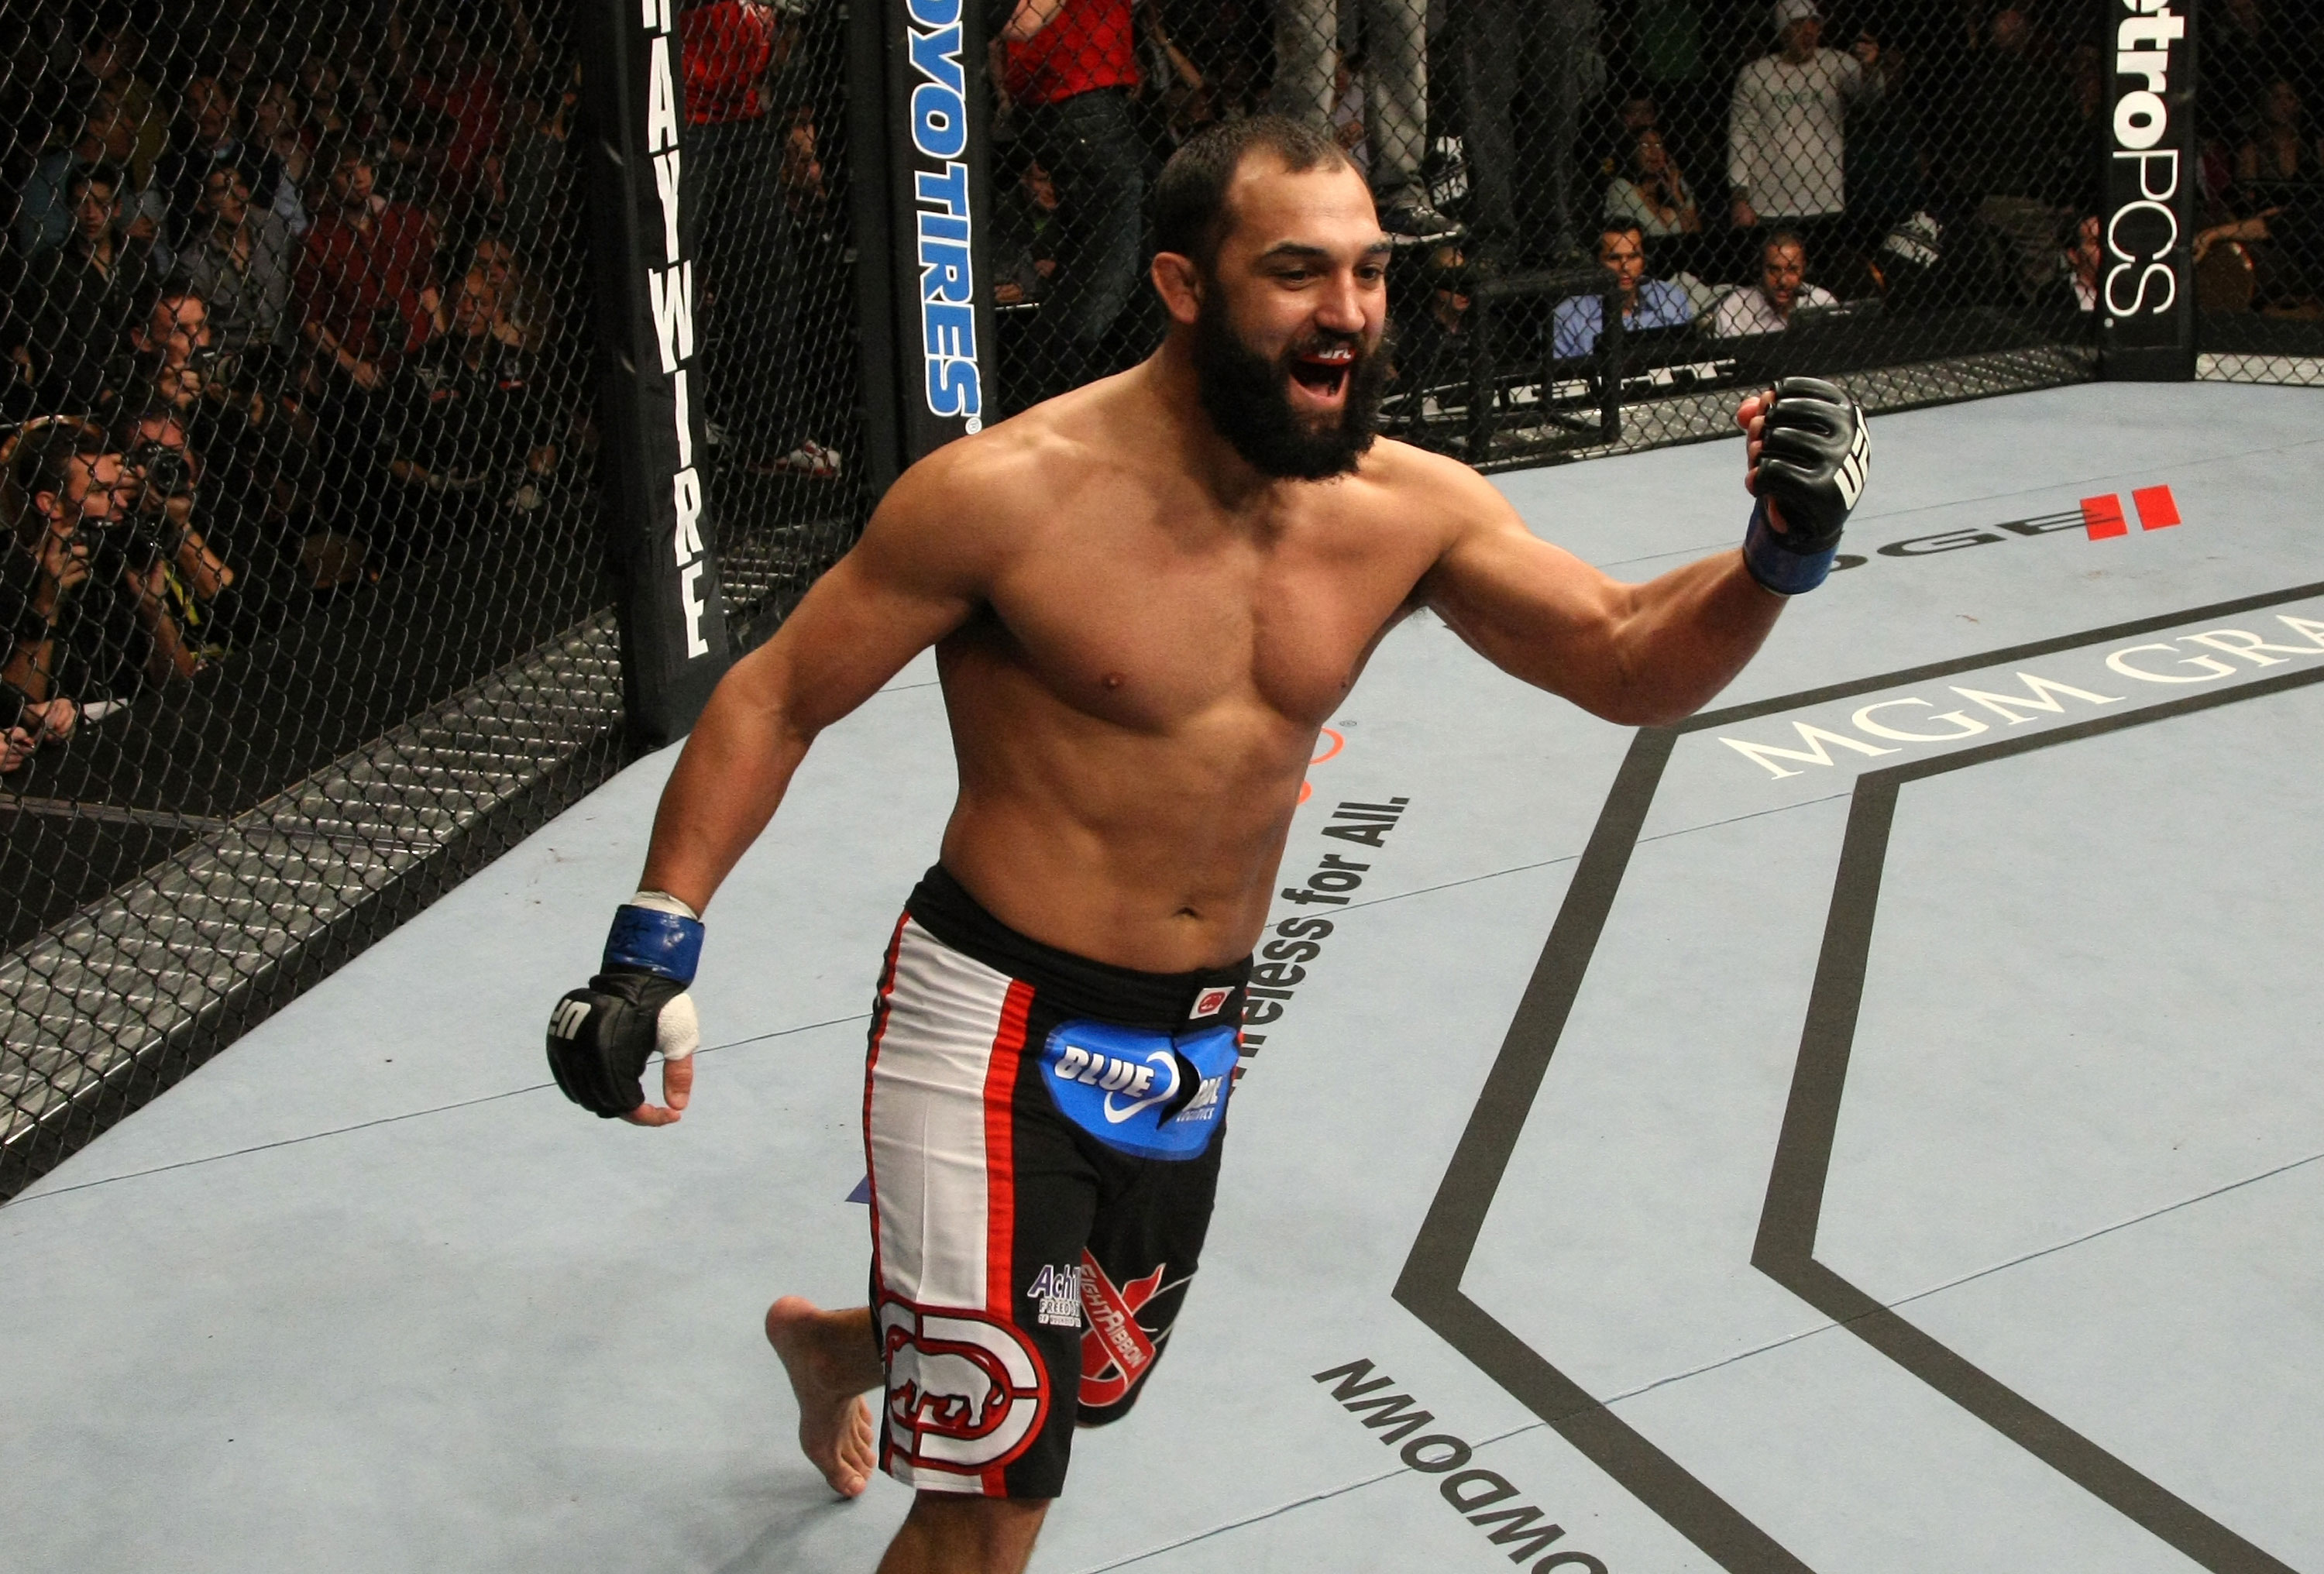 LAS VEGAS, NV - DECEMBER 30:  Johny Hendricks reacts to his knockout win over Jon Fitch during the UFC 141 event at the MGM Grand Garden Arena on December 30, 2011 in Las Vegas, Nevada.  (Photo by Donald Miralle/Zuffa LLC/Zuffa LLC via Getty Images) *** Local Caption *** Johny Hendricks